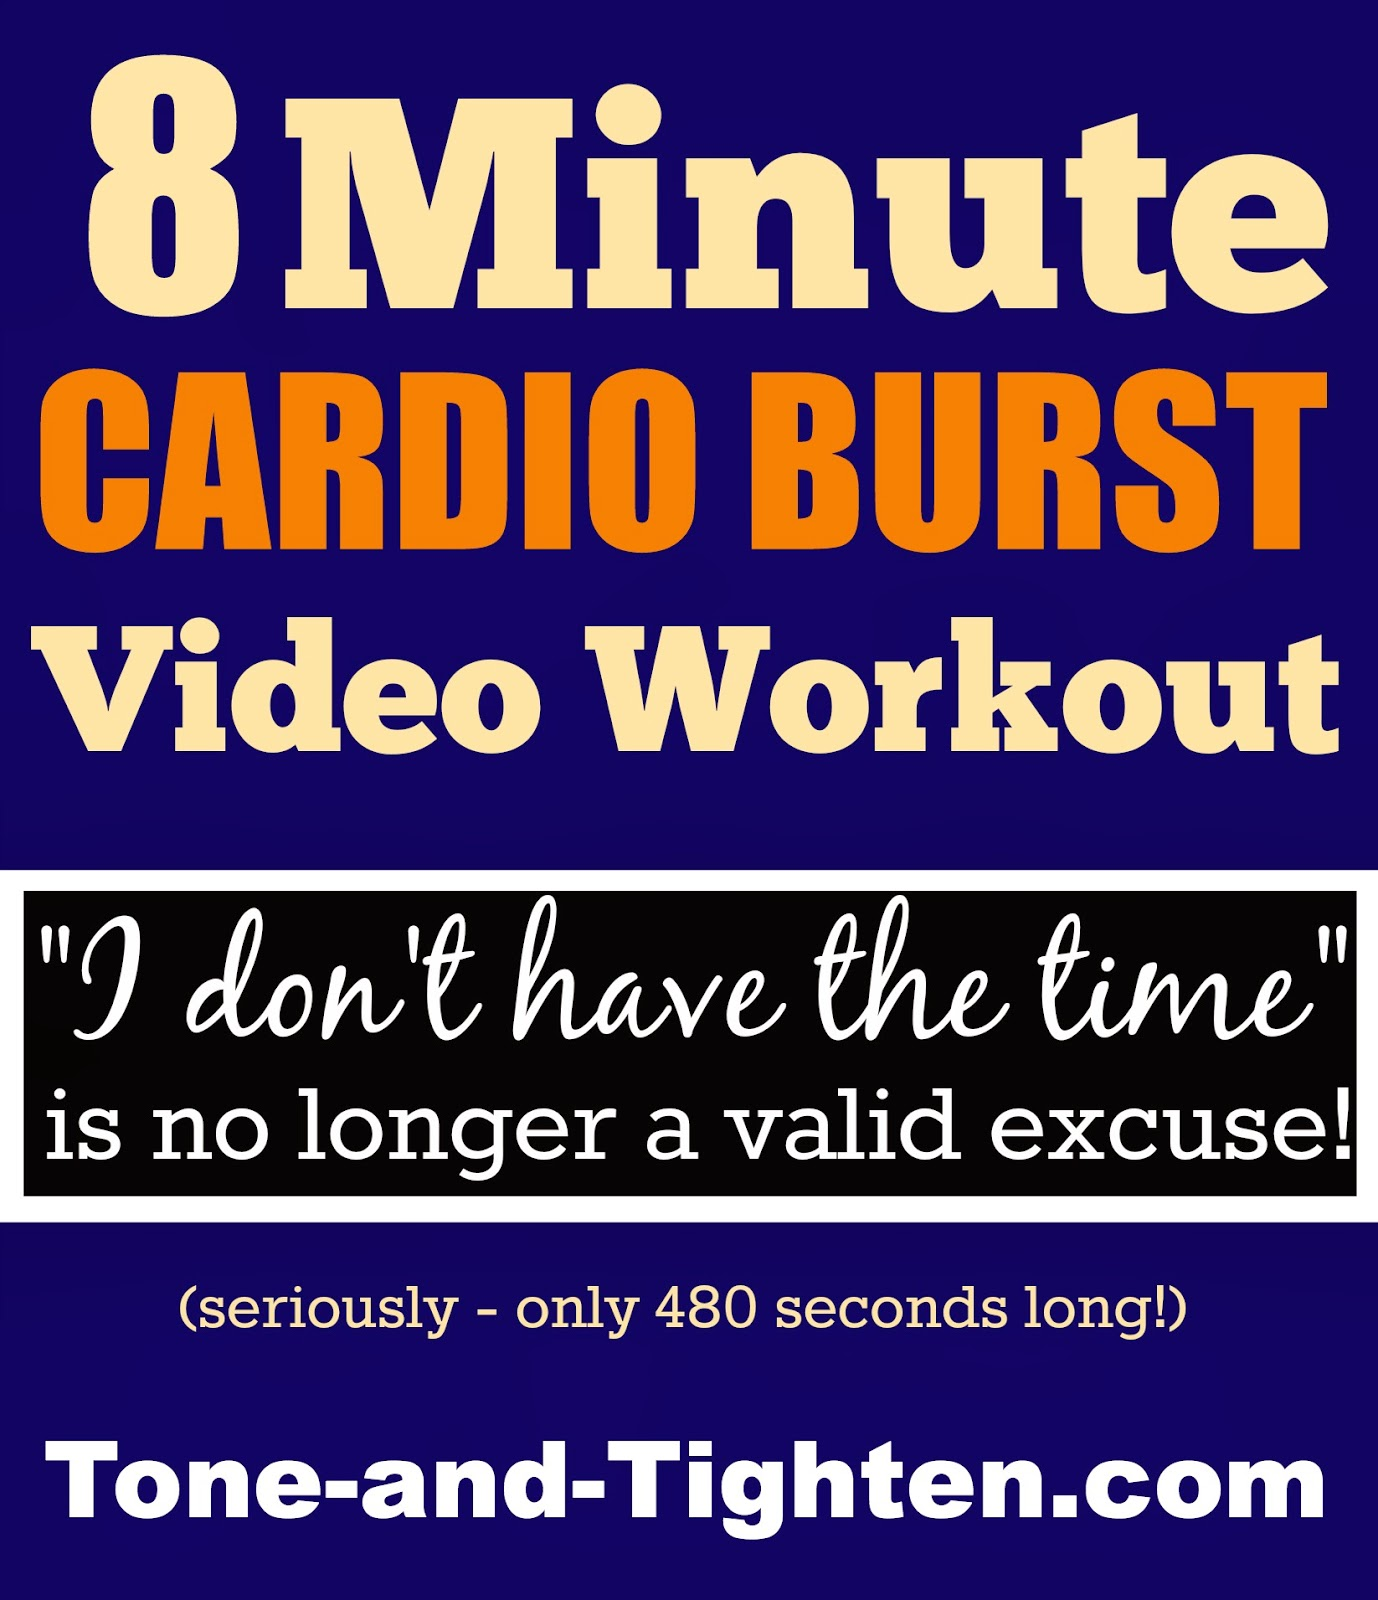 8 Minute Cardio Burst Video Workout Part 33